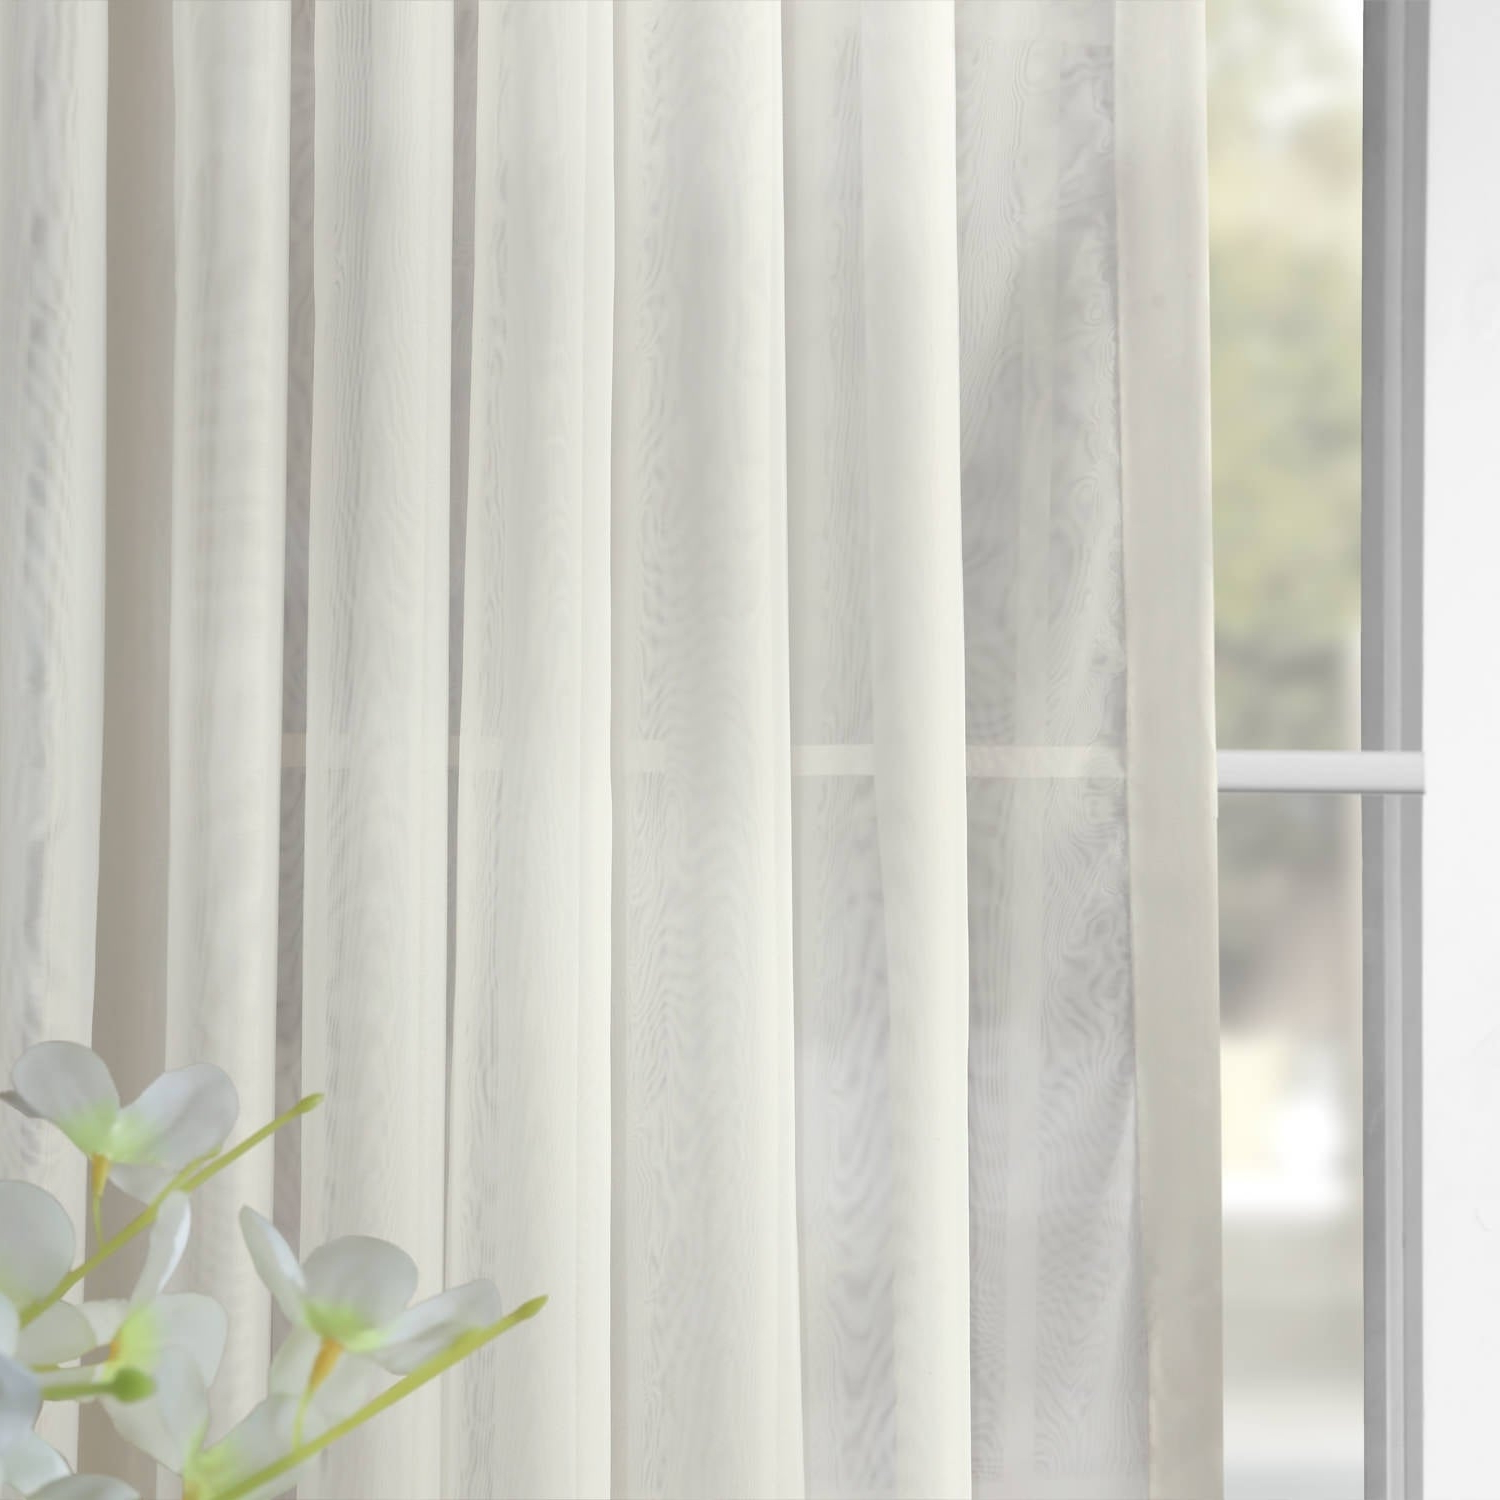 2021 Signature Extrawide Double Layer Sheer Curtain Panels Inside Exclusive Fabrics Signature Extrawide Double Layer Sheer Curtain Panel (View 10 of 20)